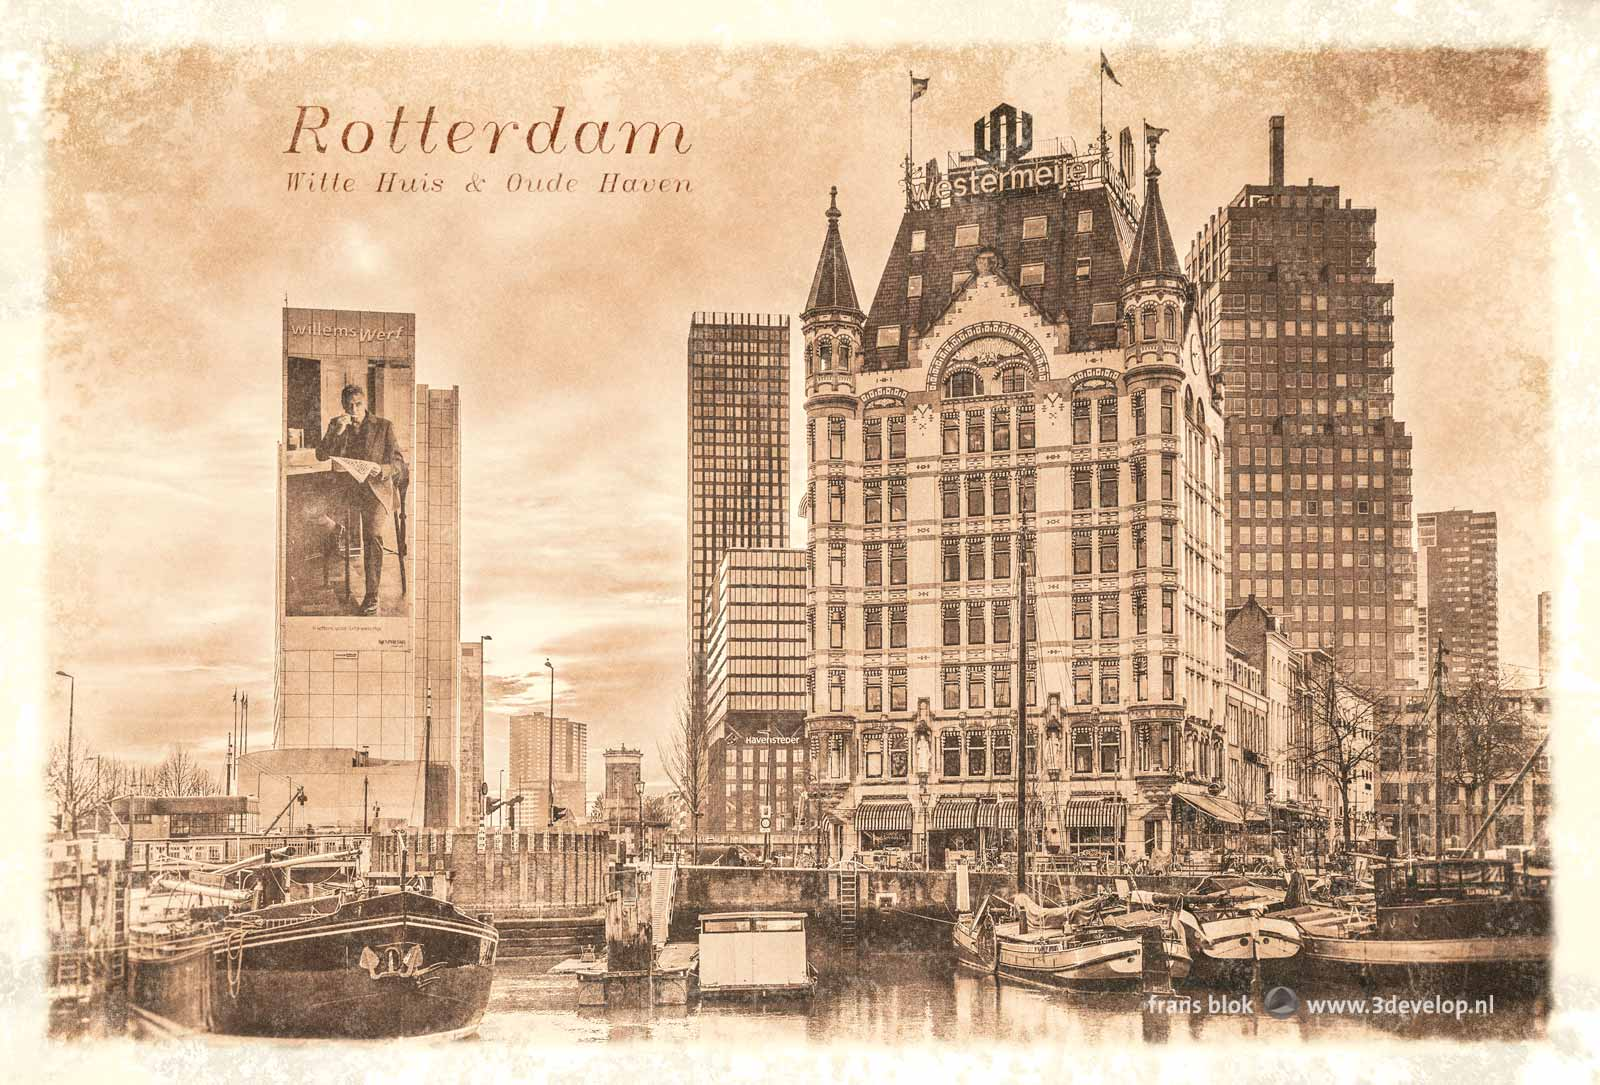 """Old"" vintage postcard, or rather a digitally aged recent photo of the White House and the Old Harbour in Rotterdam"